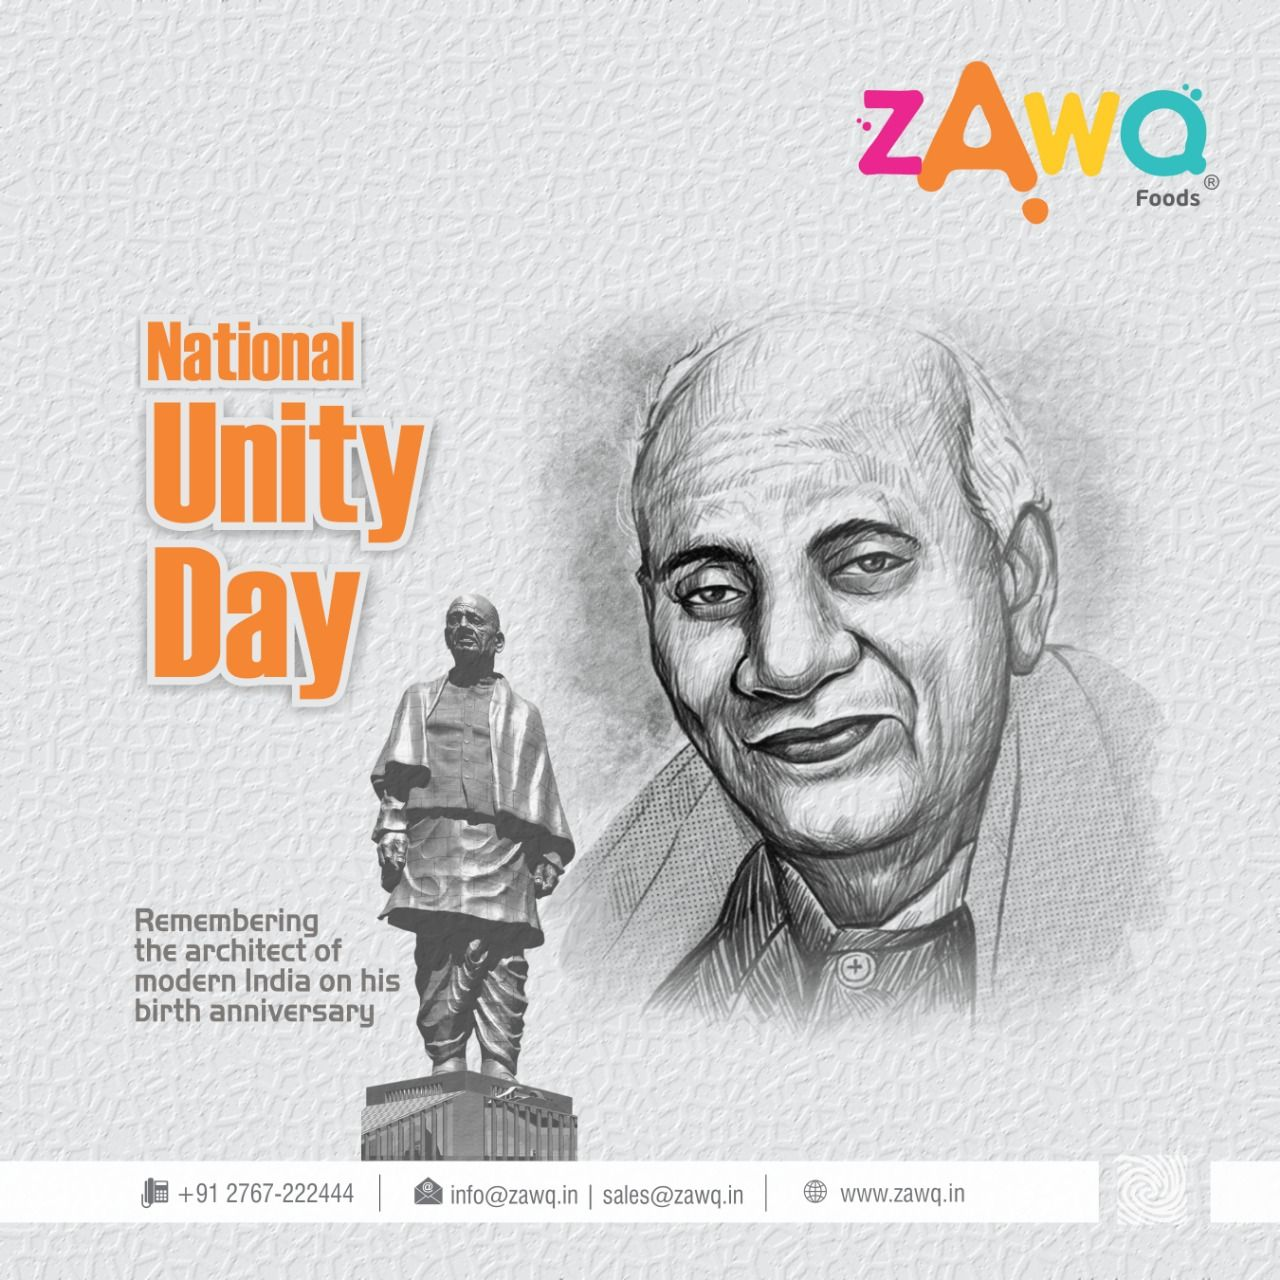 Remembering The Architect Of Modern India On His Birth Anniversary National Unity Day Zawq Namkeen Instafood Snacks Foods N Unity Day Indian Festivals